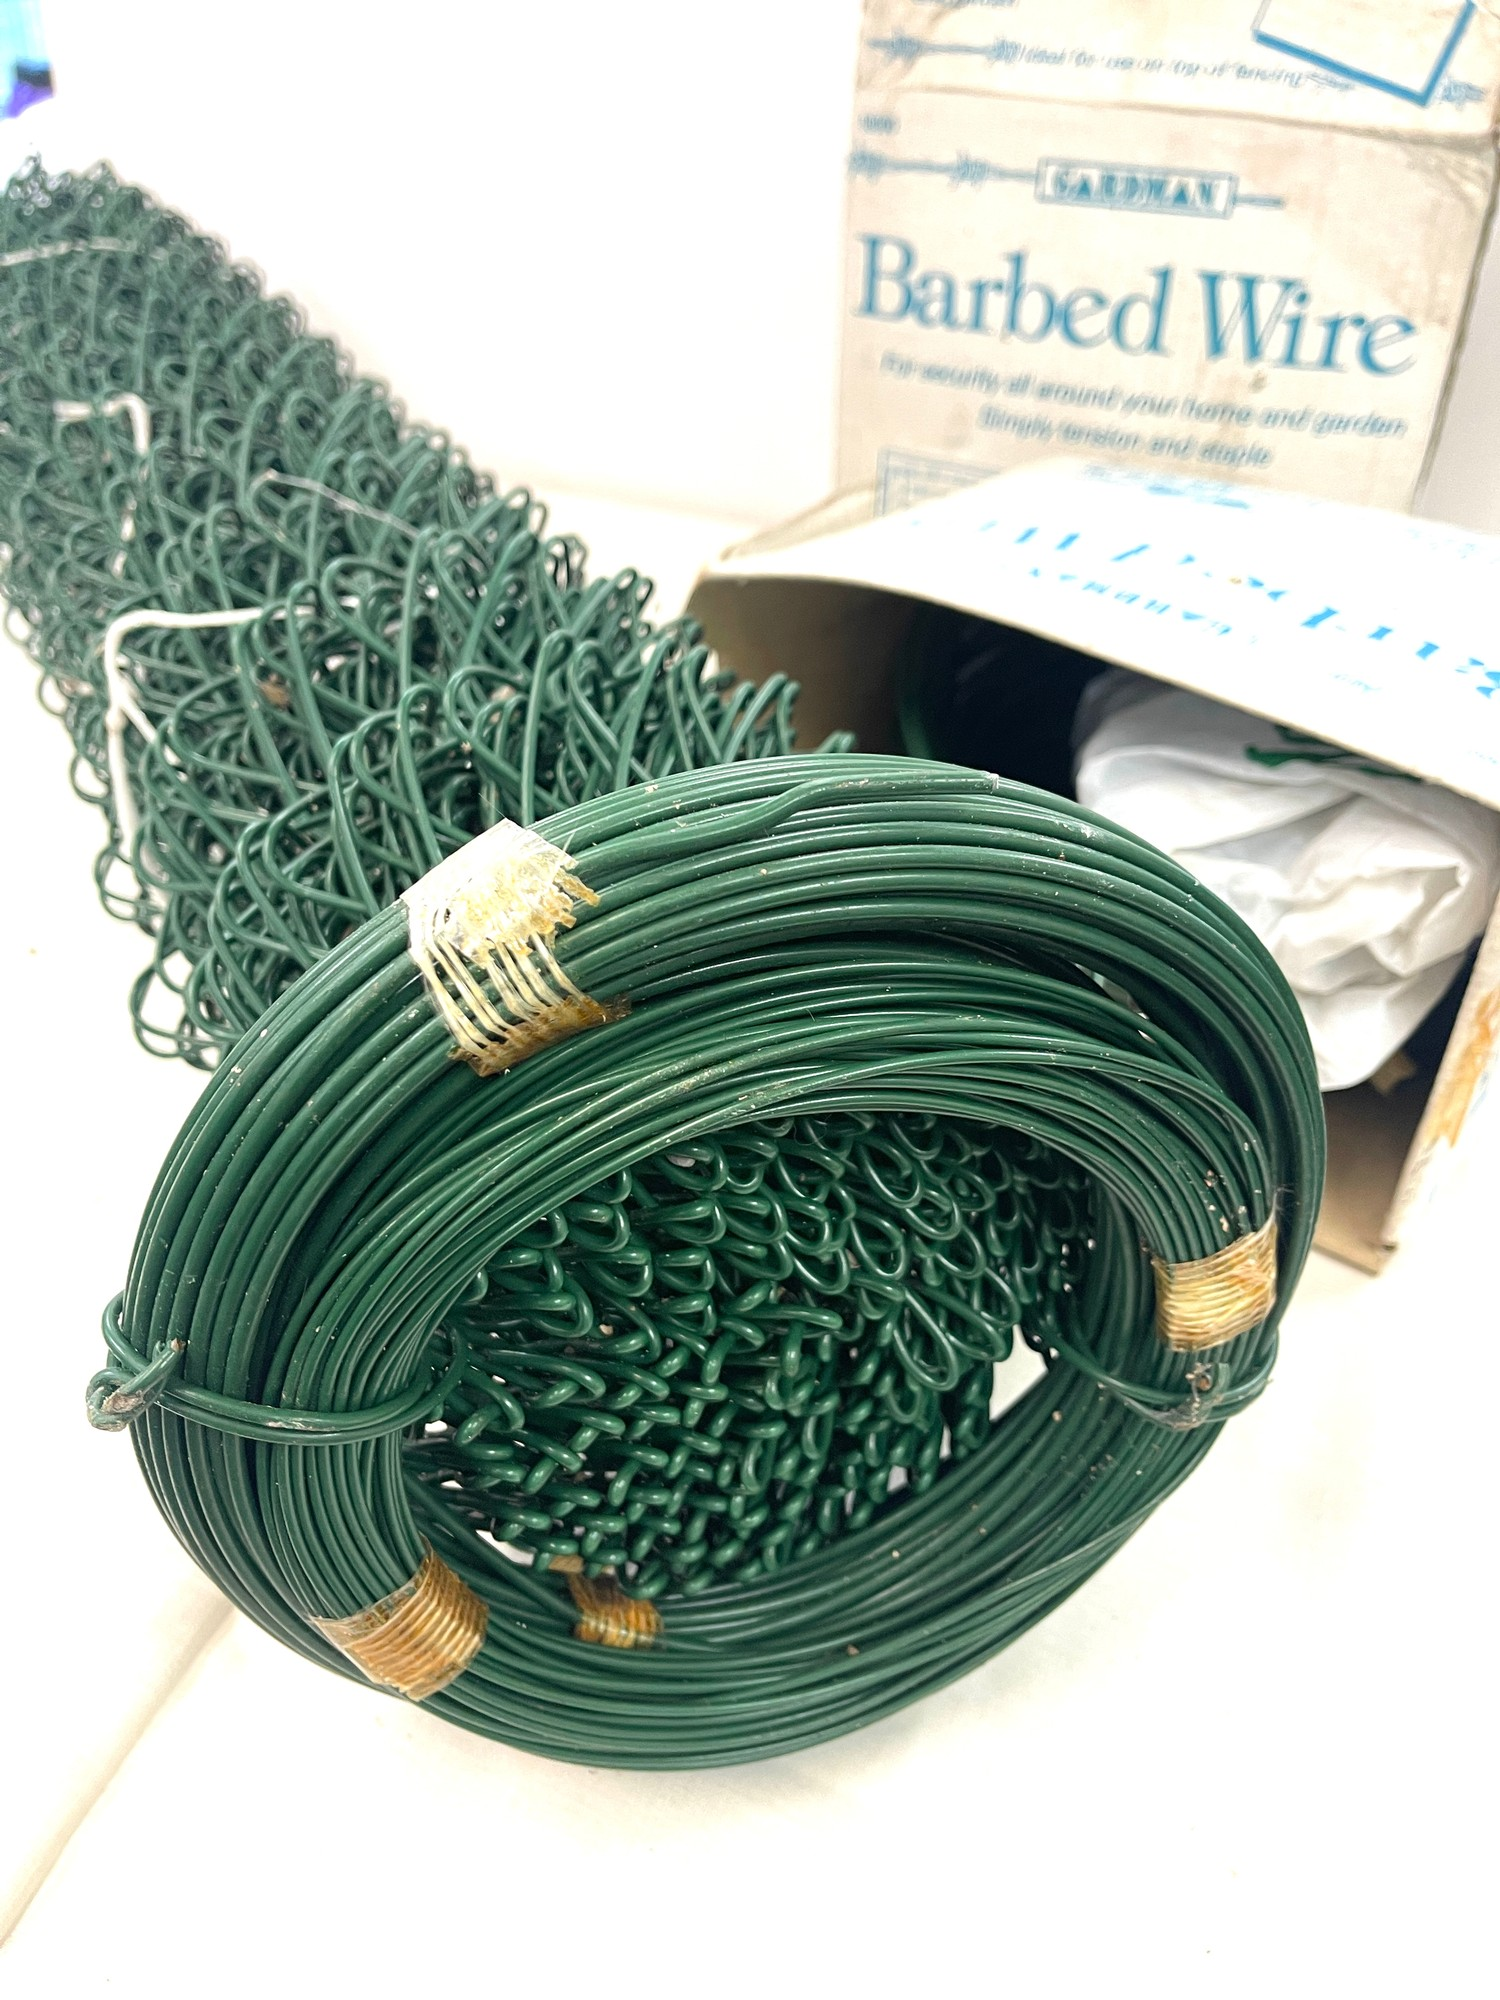 Selection of garden wire - Image 4 of 4